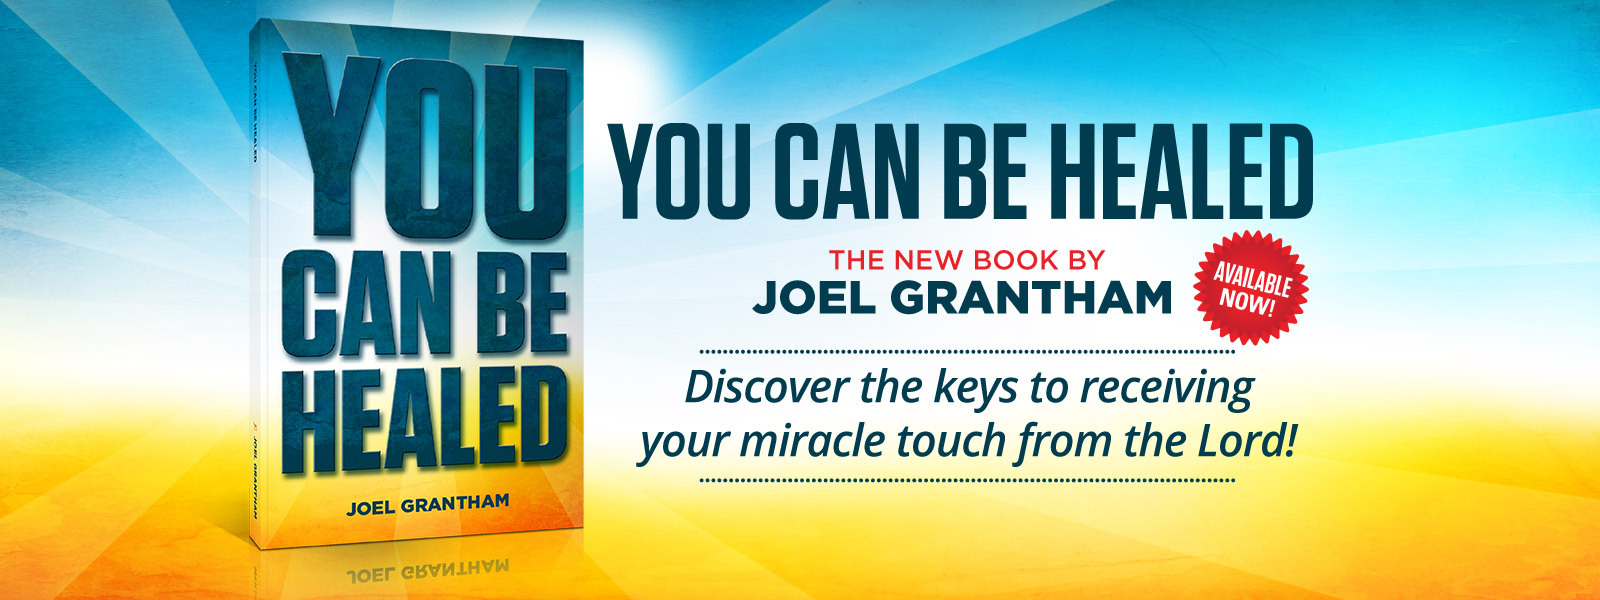 you-can-be-healed-book